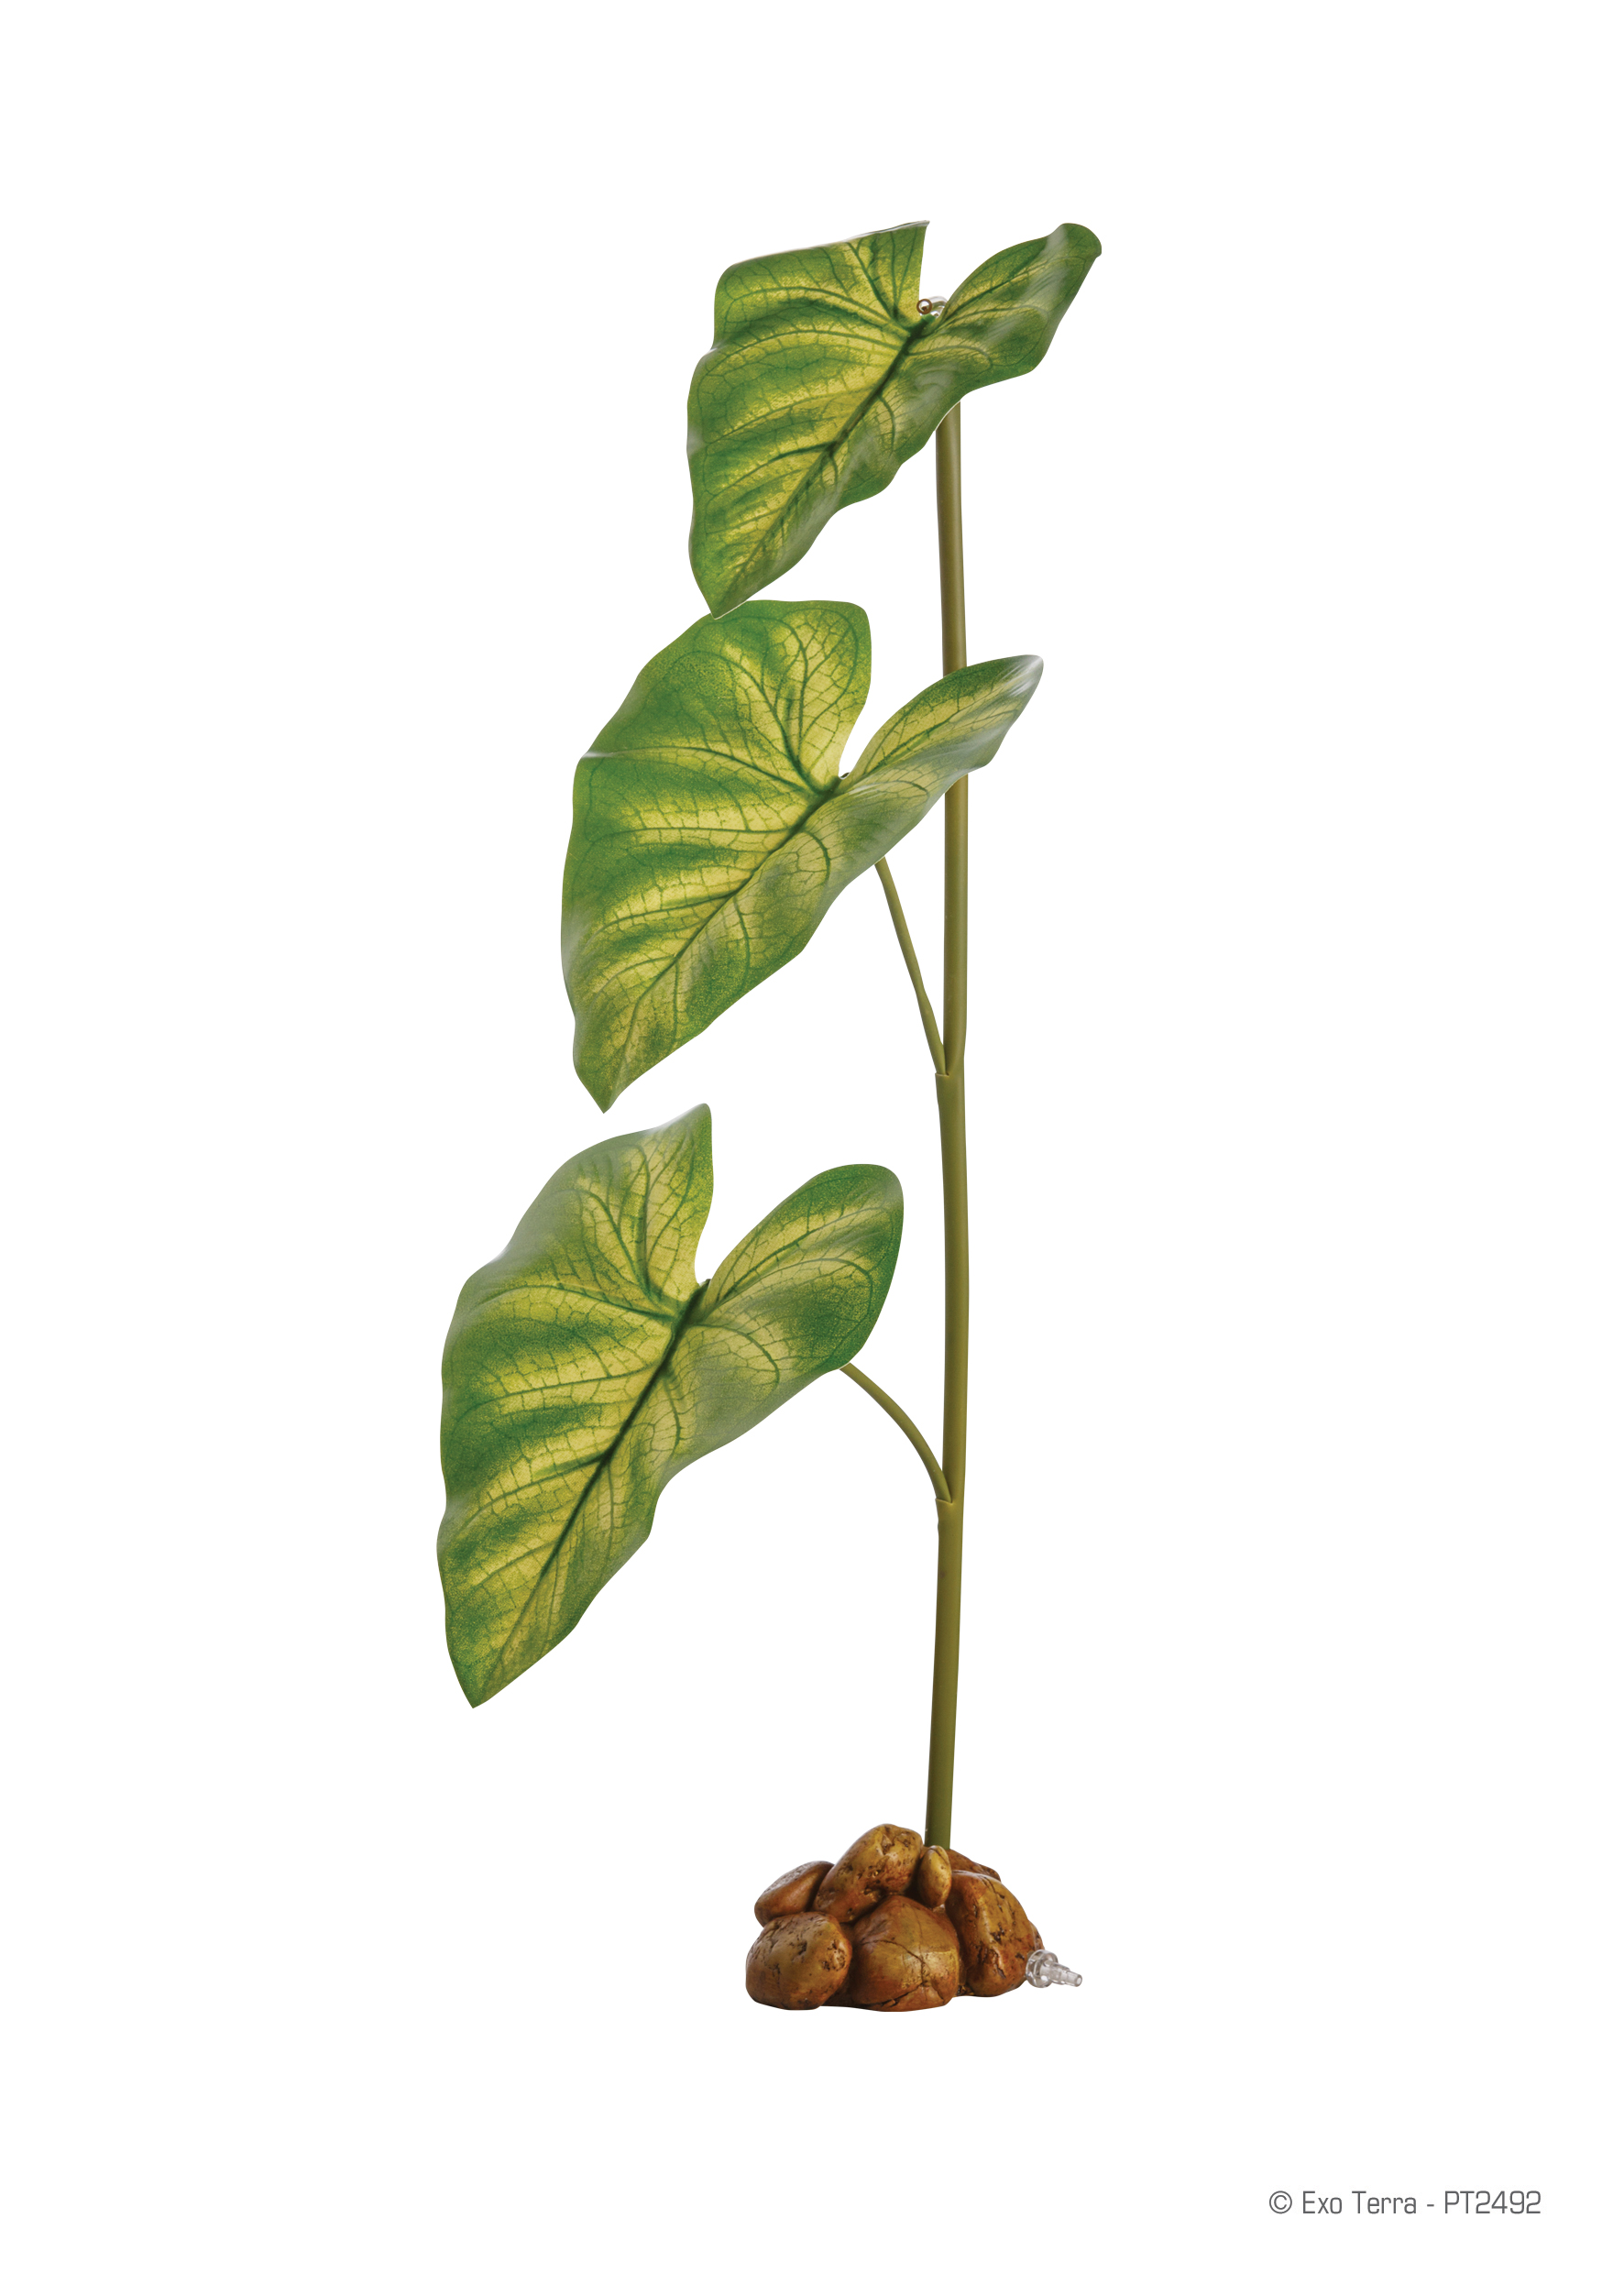 Exo Terra Dripper Plant Drip Watering System: Dripper Plant Large